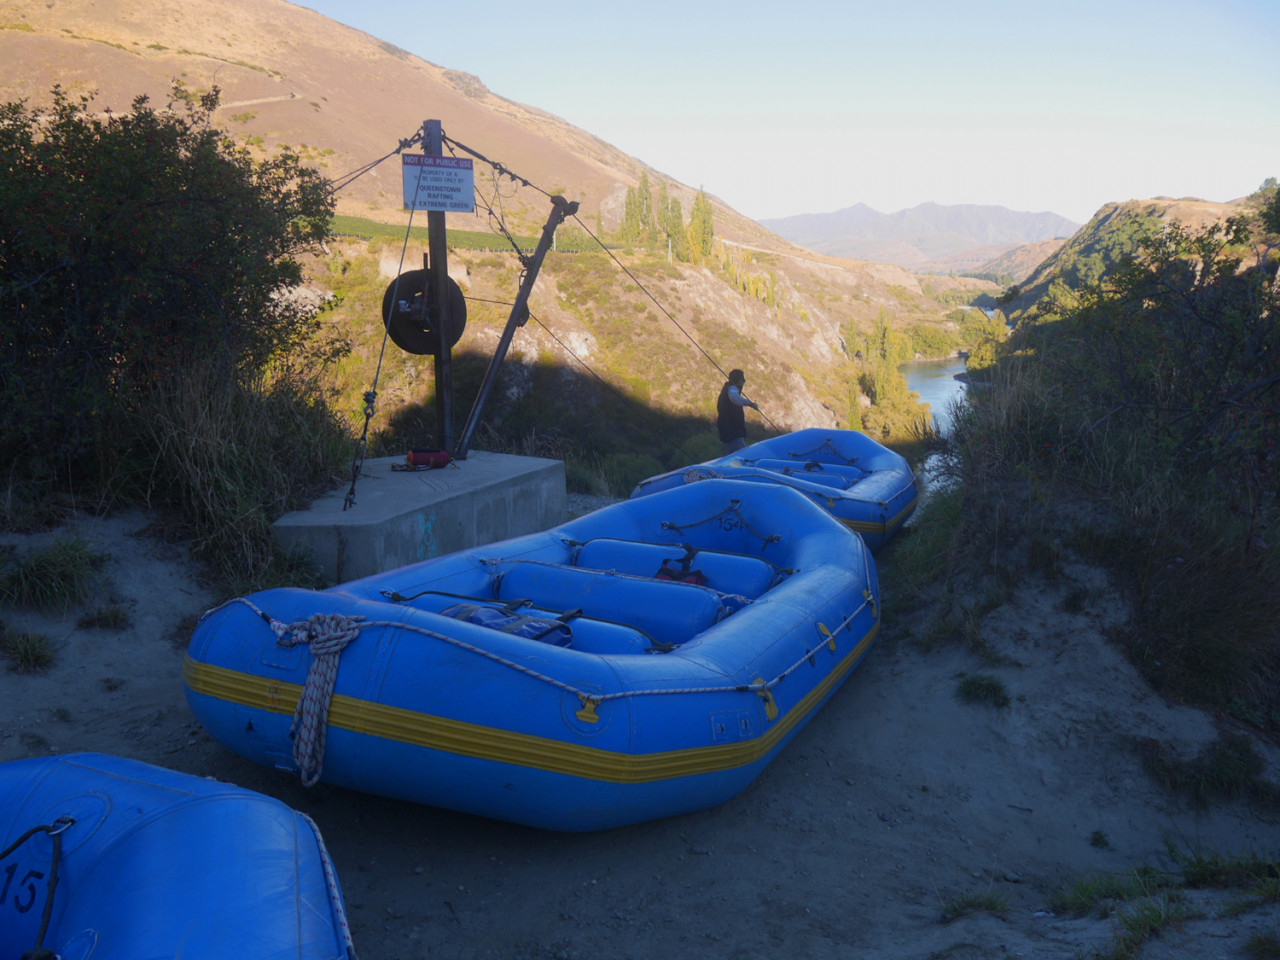 Our rafts queueing for the flying fox ride into the Kawarau gorge below.